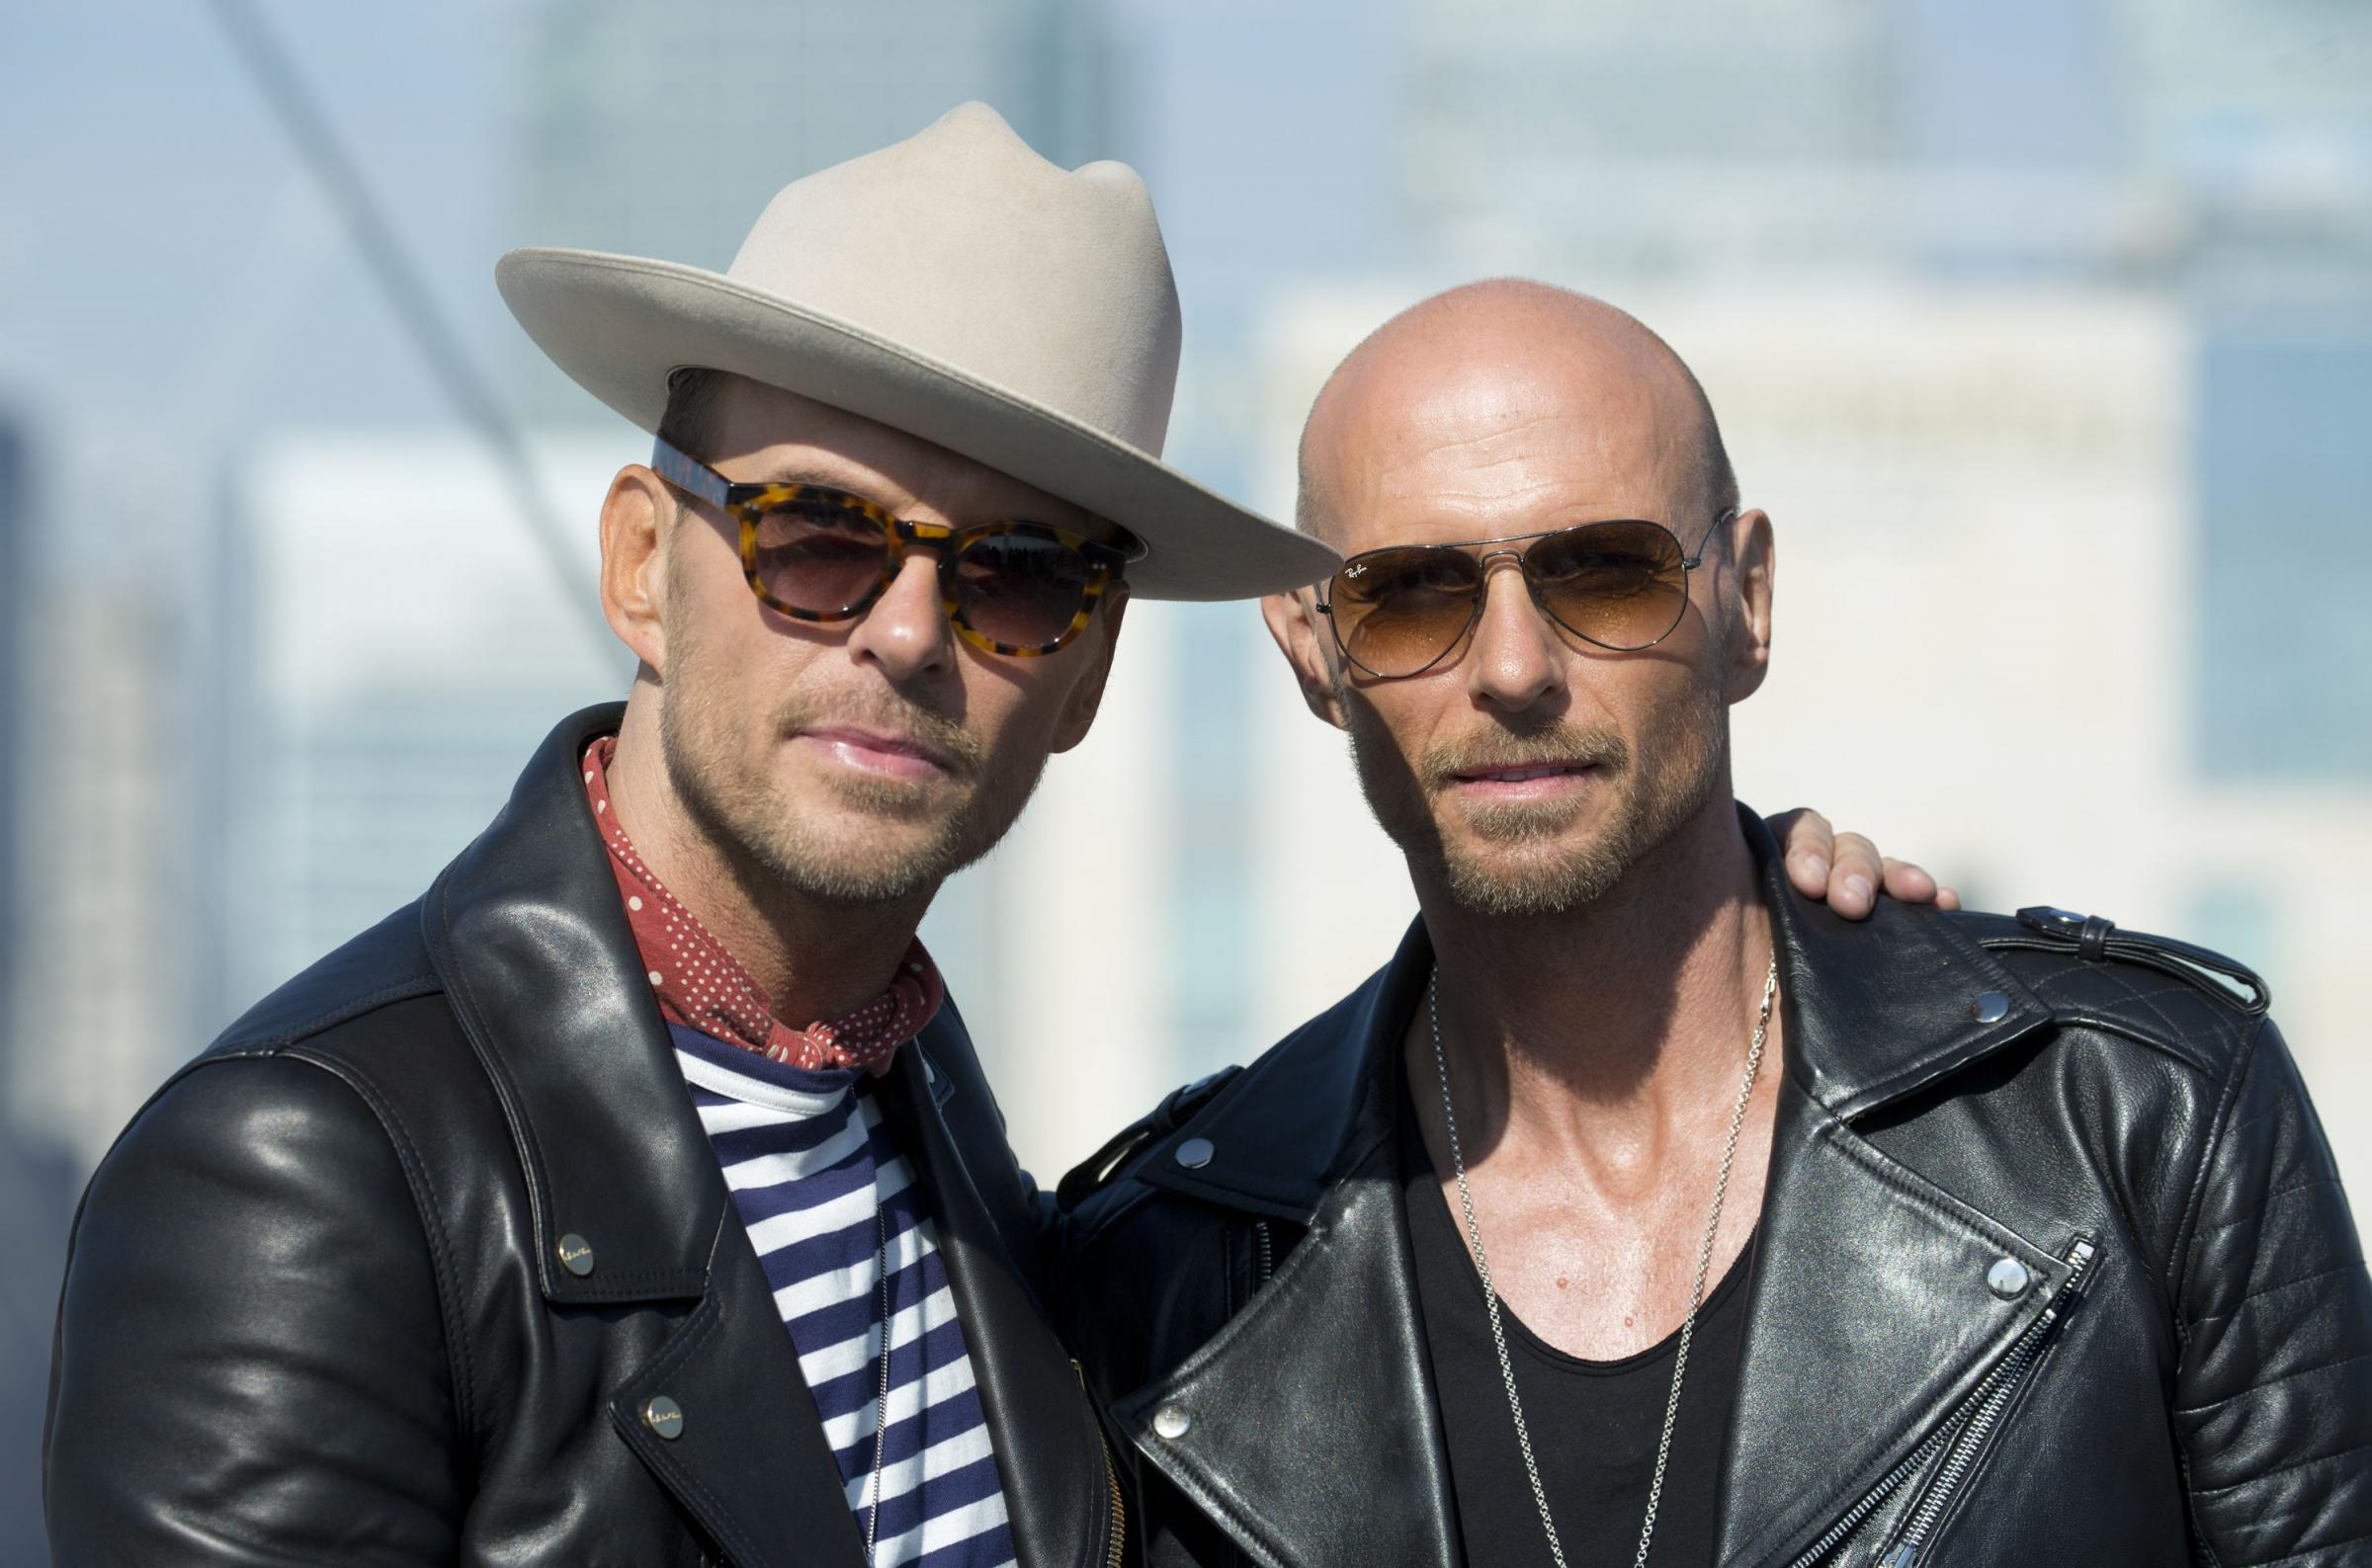 Bros & Matt and Luke Goss are planning the show in London for a BBC documentary - News Shopper